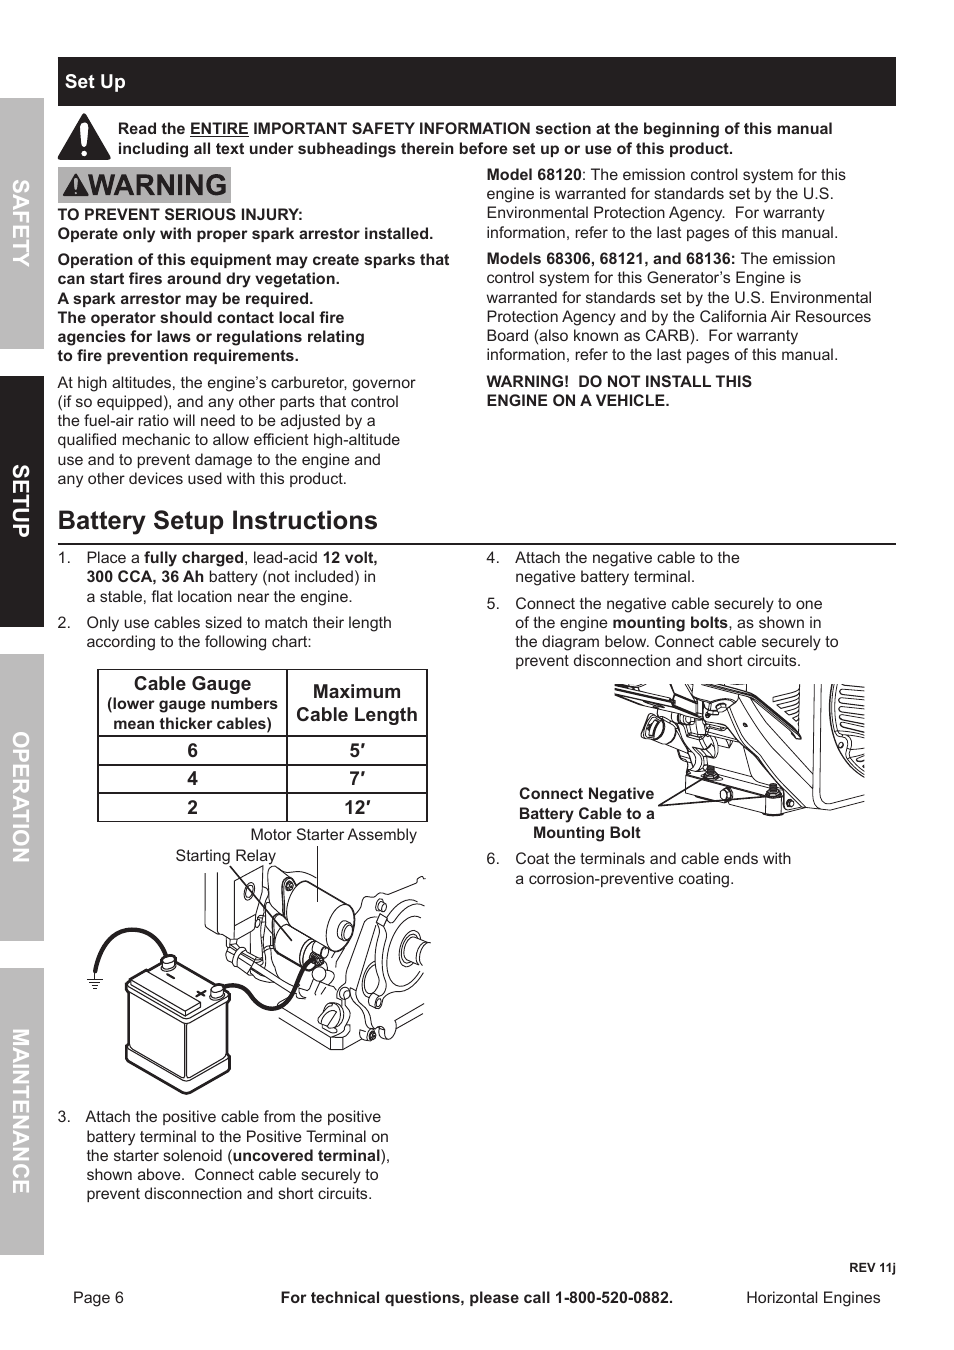 Battery Setup Instructions  Safety Opera Tion Maintenance